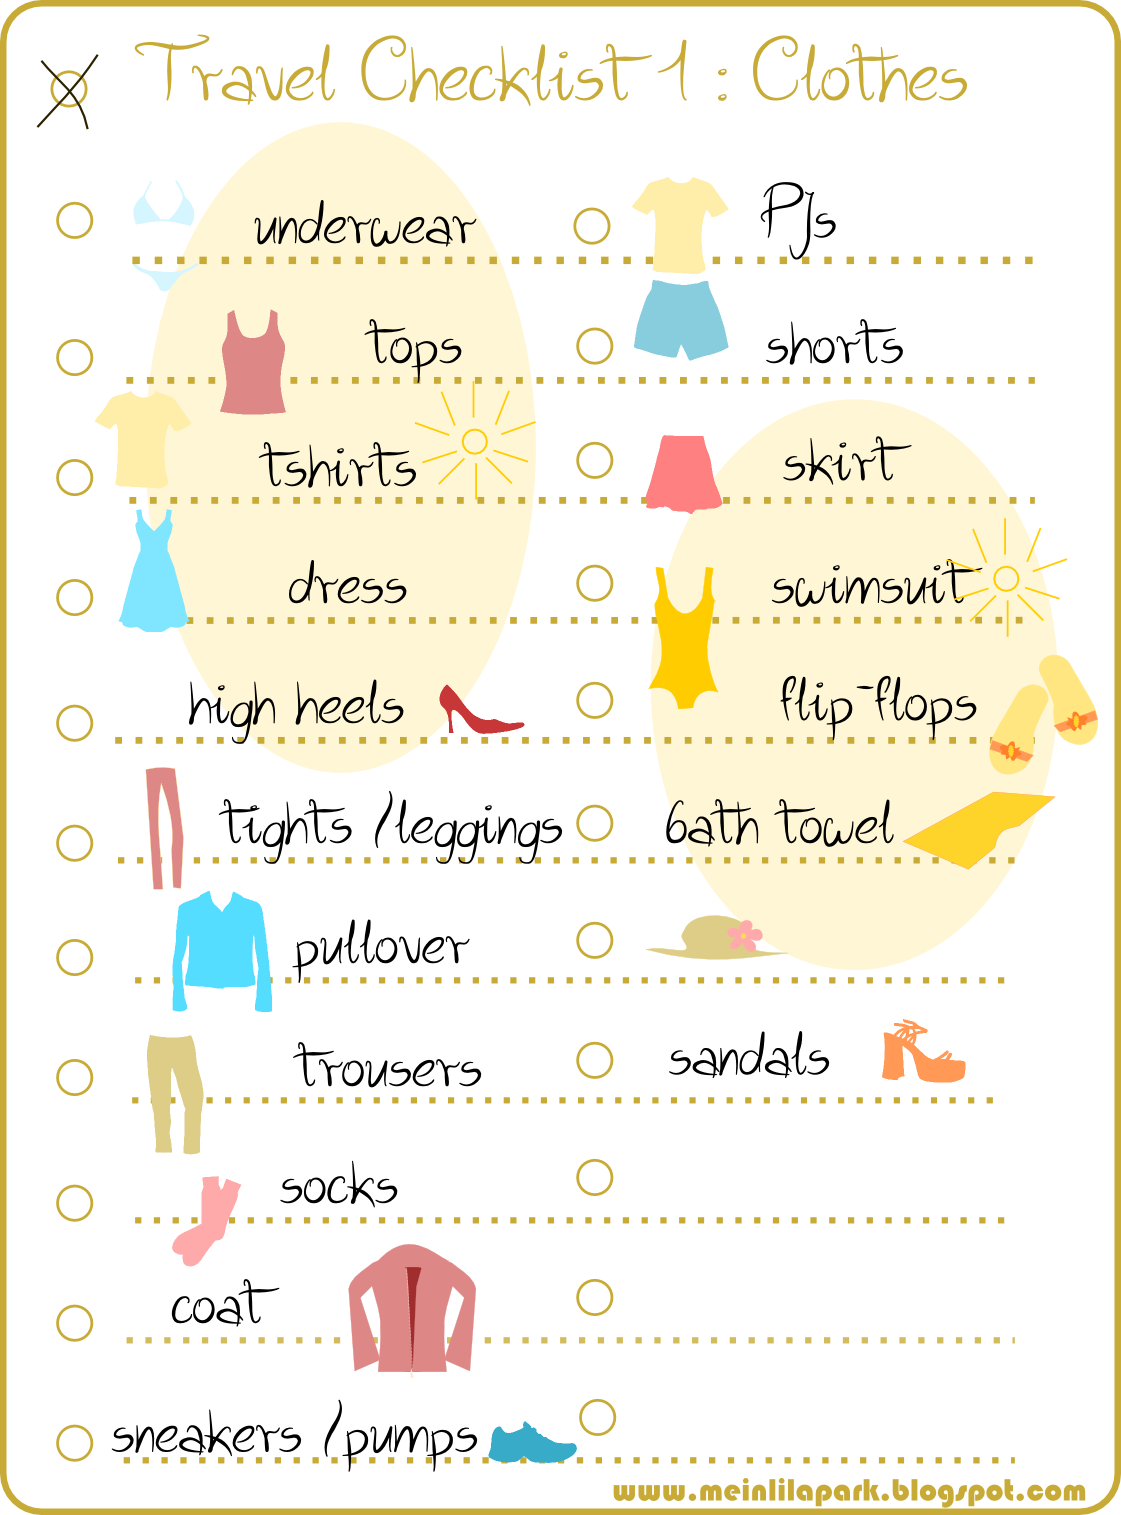 free printable travel checklist part 1 clothes colorful packing – Travel Checklist